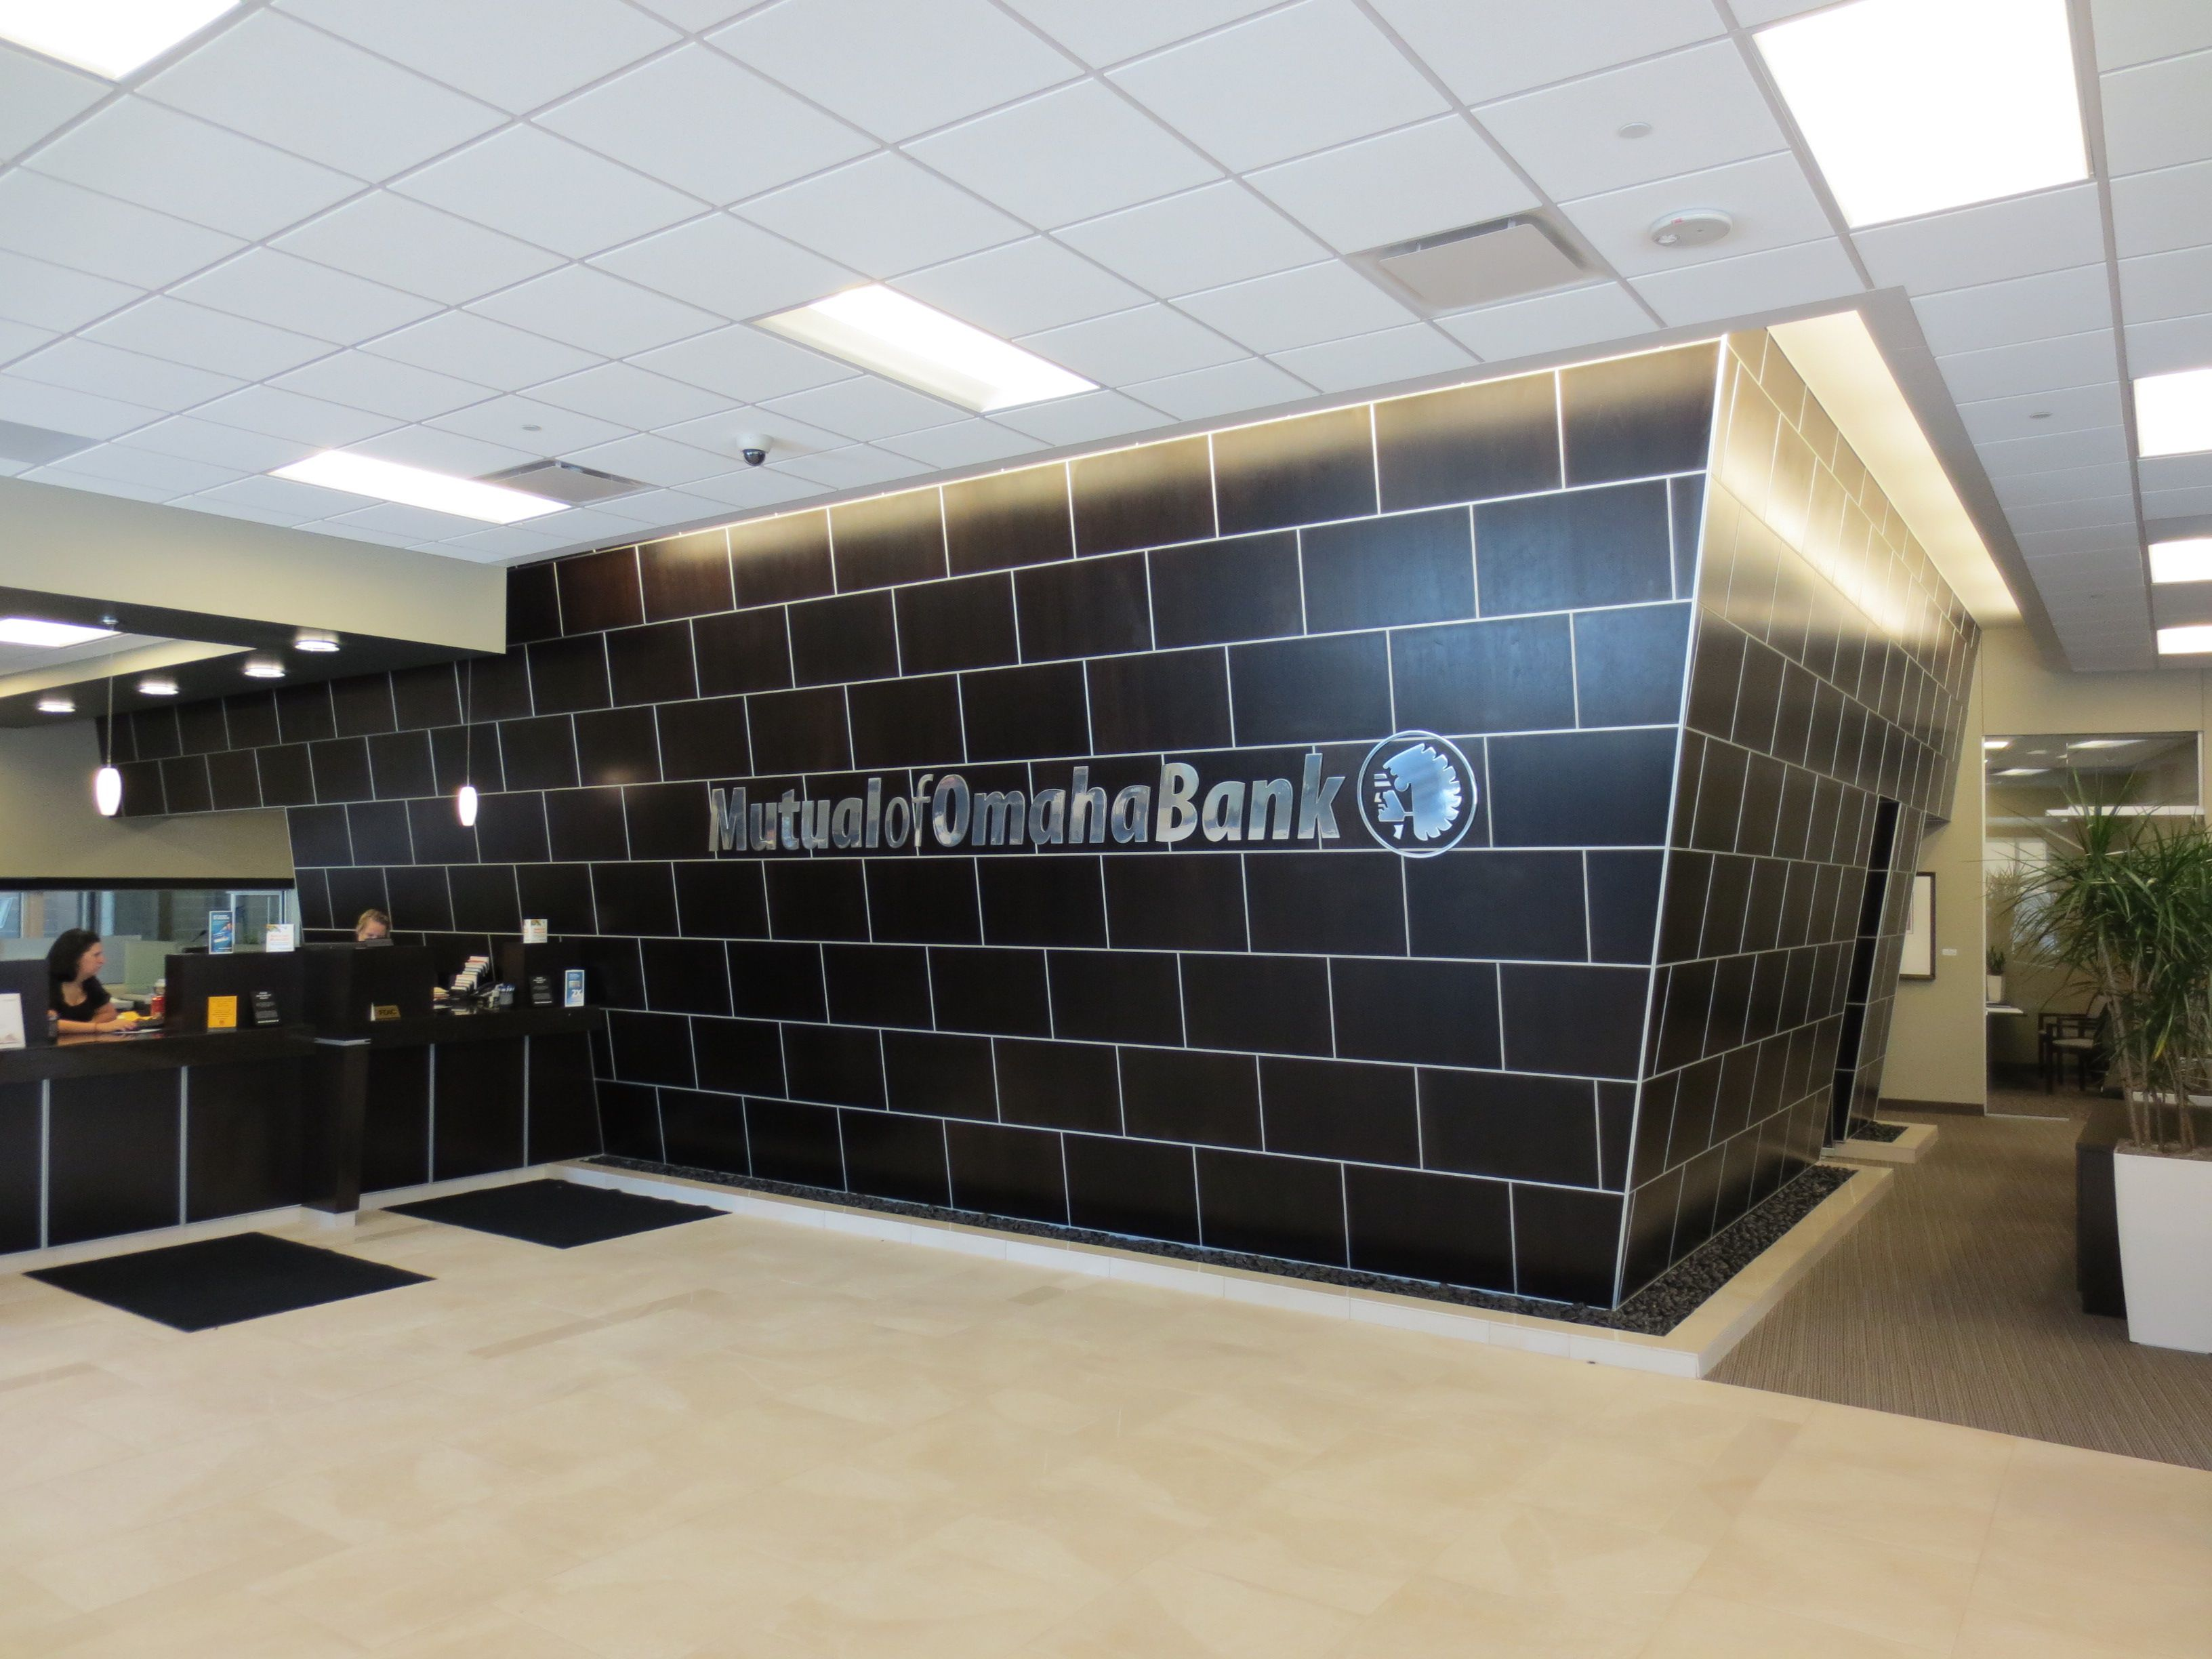 Stunning Design for Mutual of Omaha Bank using Marlite